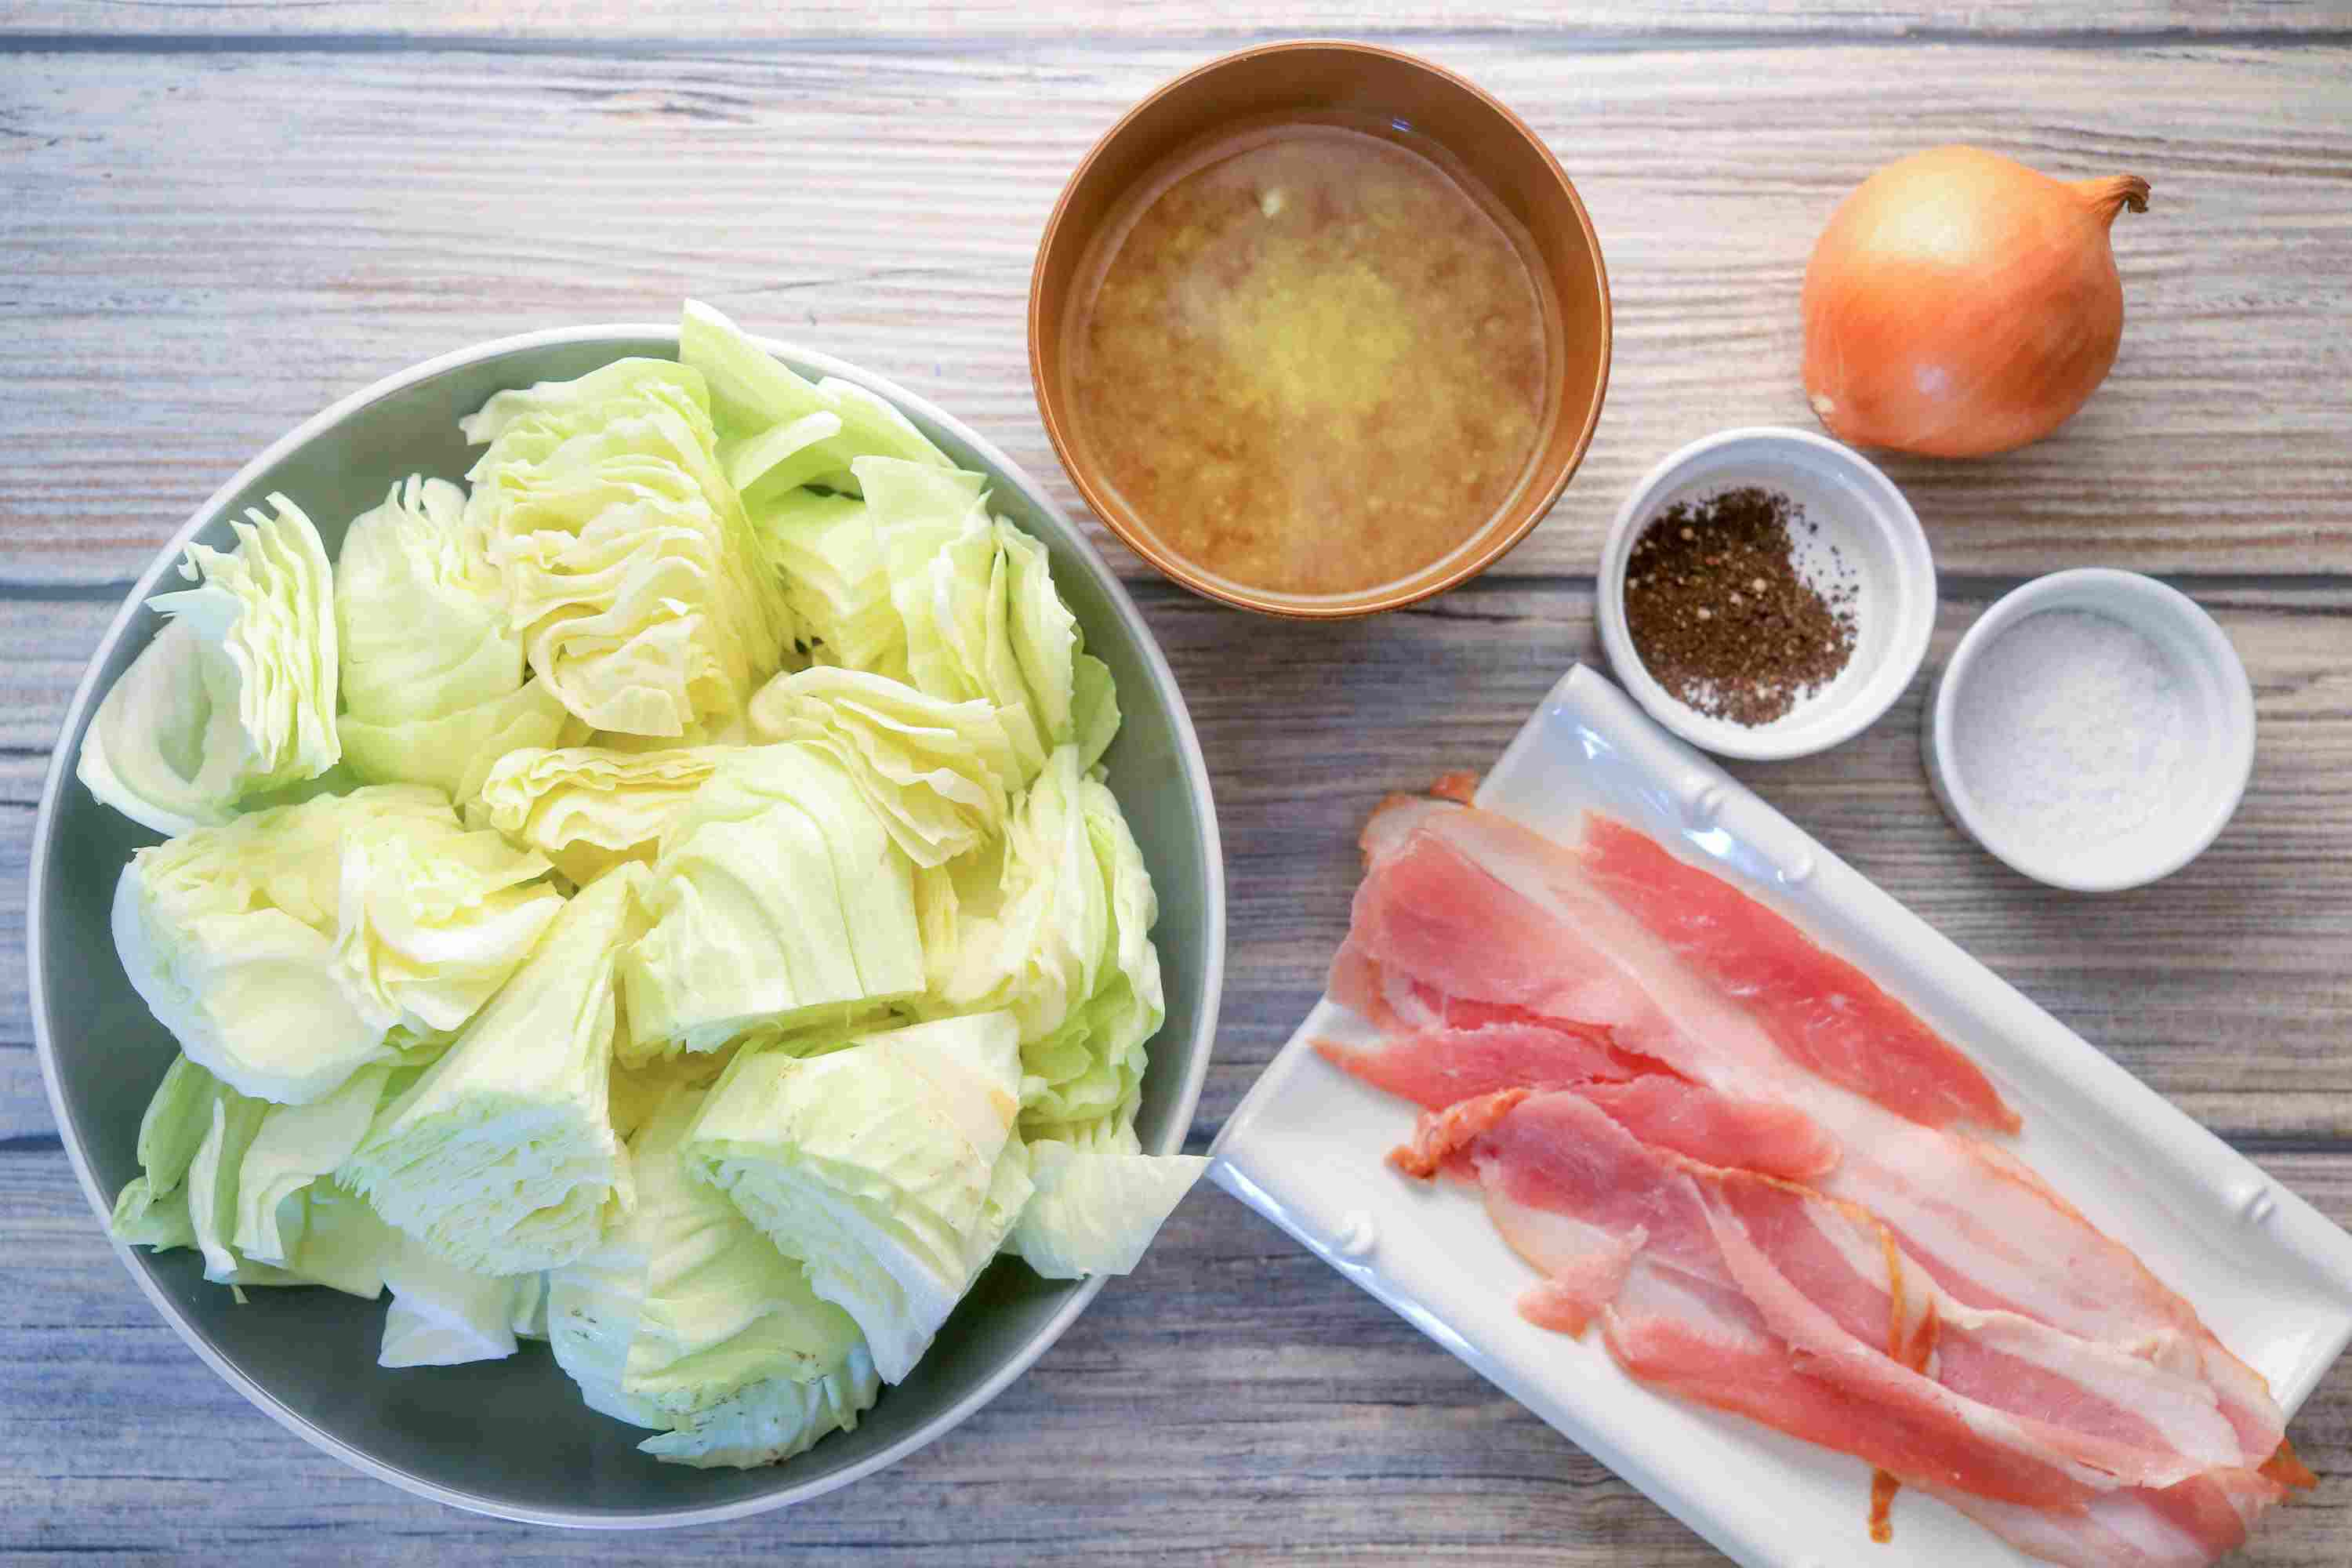 Boiled Cabbage With Bacon Ingredients